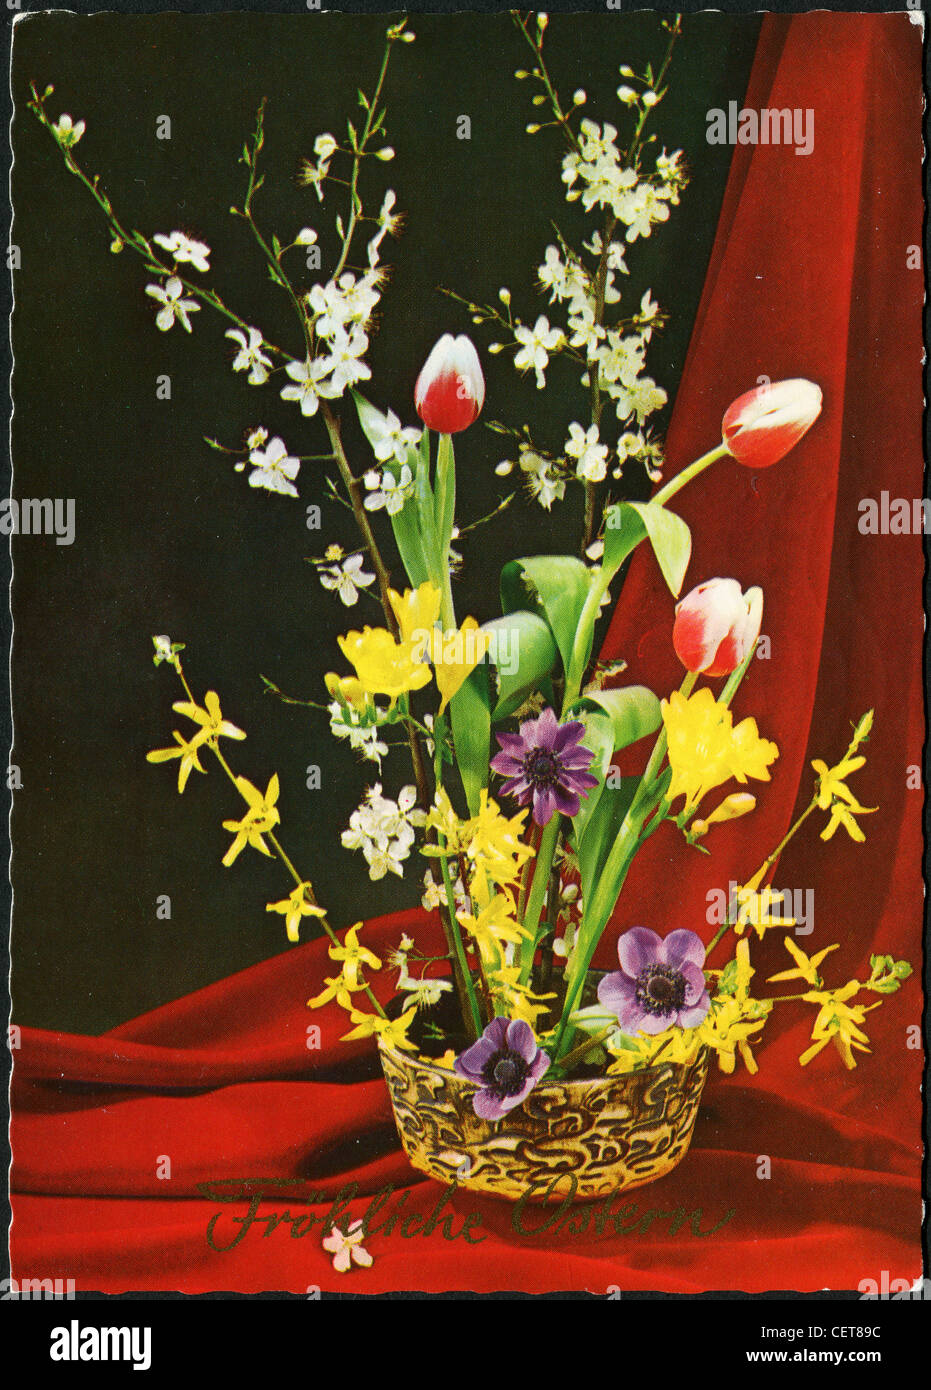 Easter postcard printed in Germany, shows the beautiful flowers in a vase, circa 1999. German Text: Happy Easter! Stock Photo